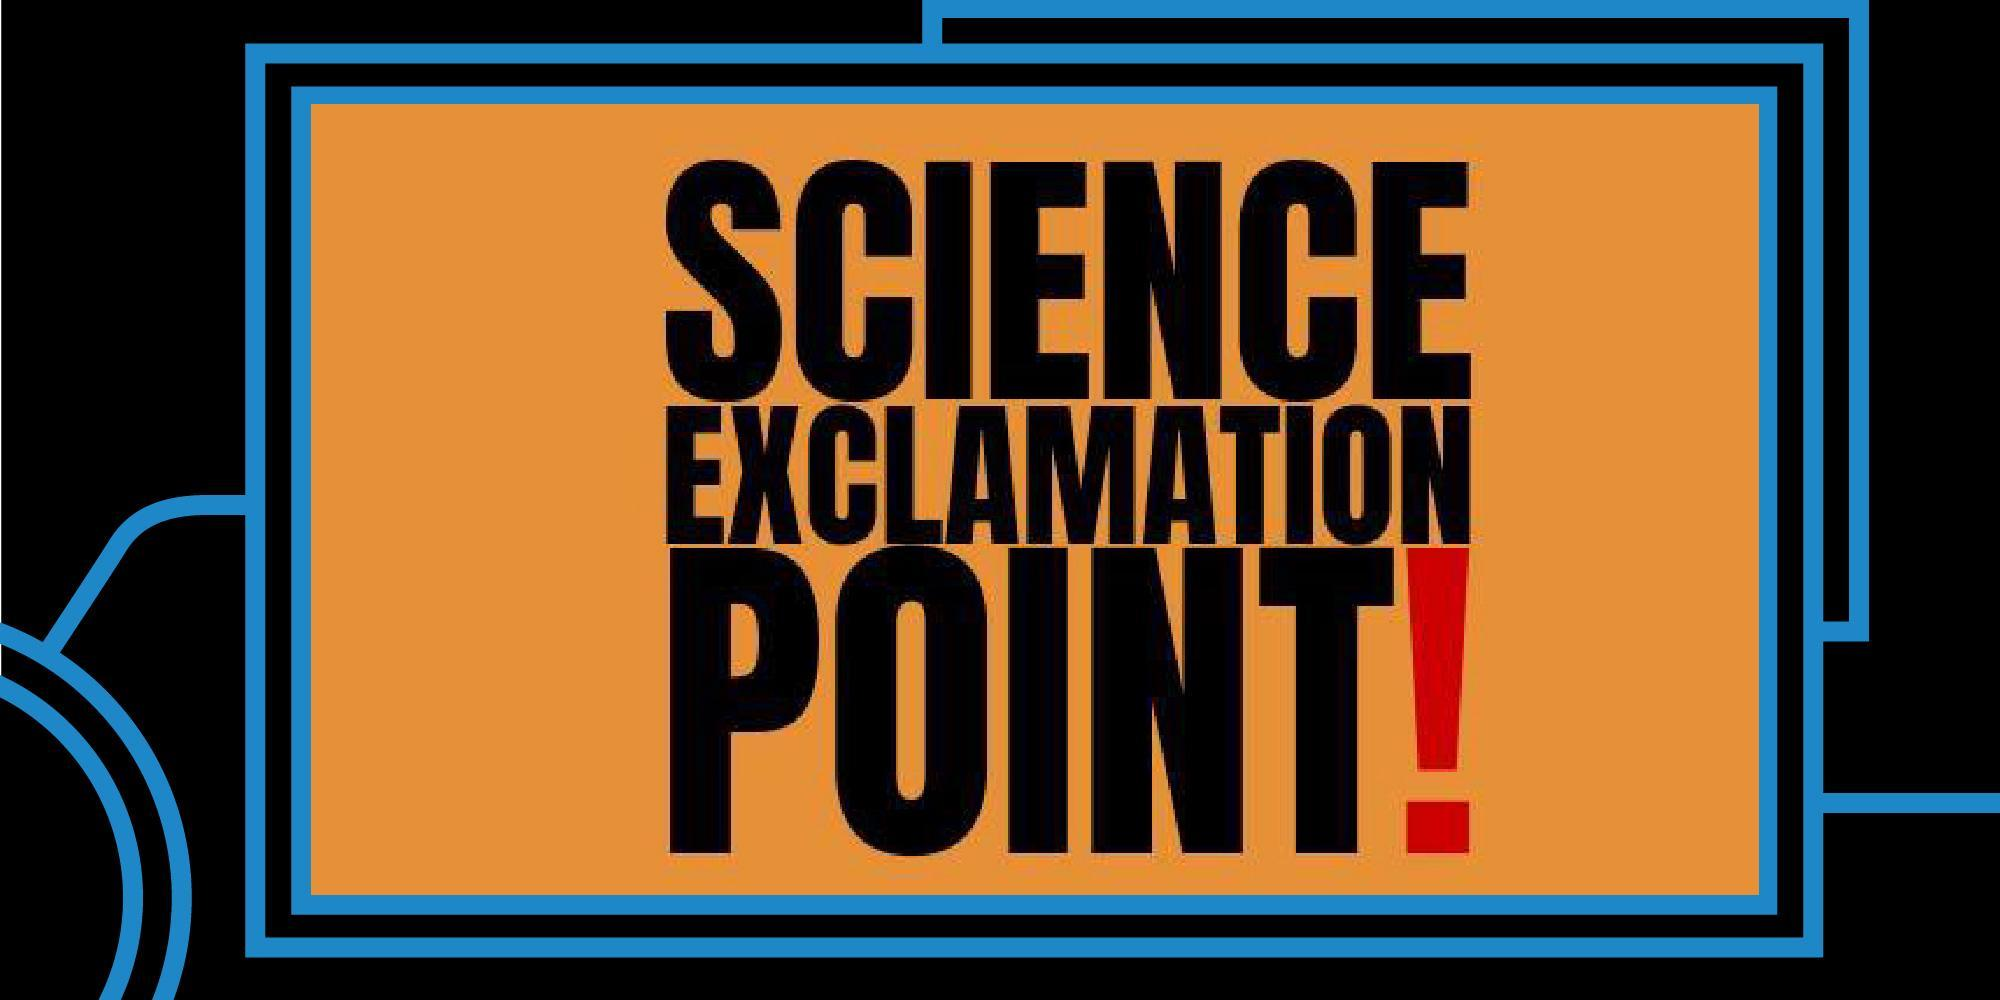 3201 image - Science Exclamation Point